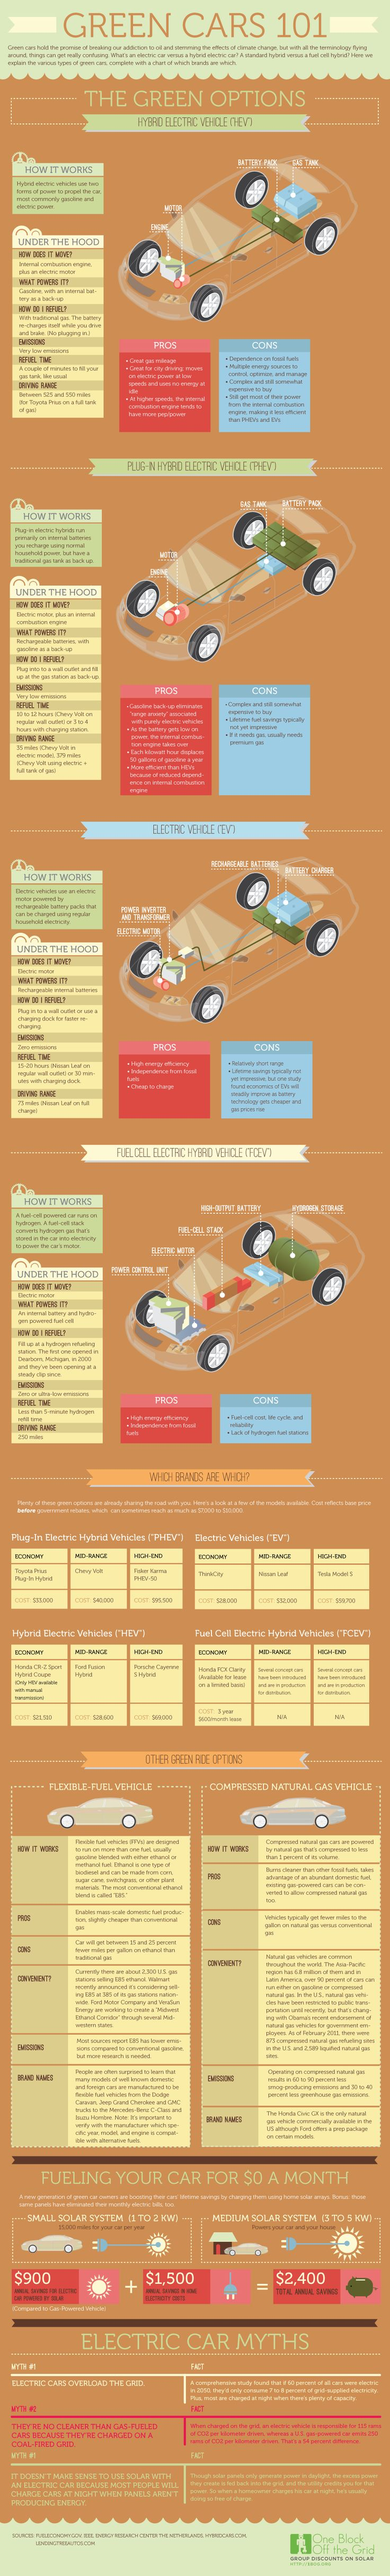 With all the terminology about green cars and climate change, it's hard to make sense of the information. This graphic from One Block off the Grid breaks it down, from the types of vehicles to how to charge them with solar power. #cars #sustainability #ecofriendly #infographic